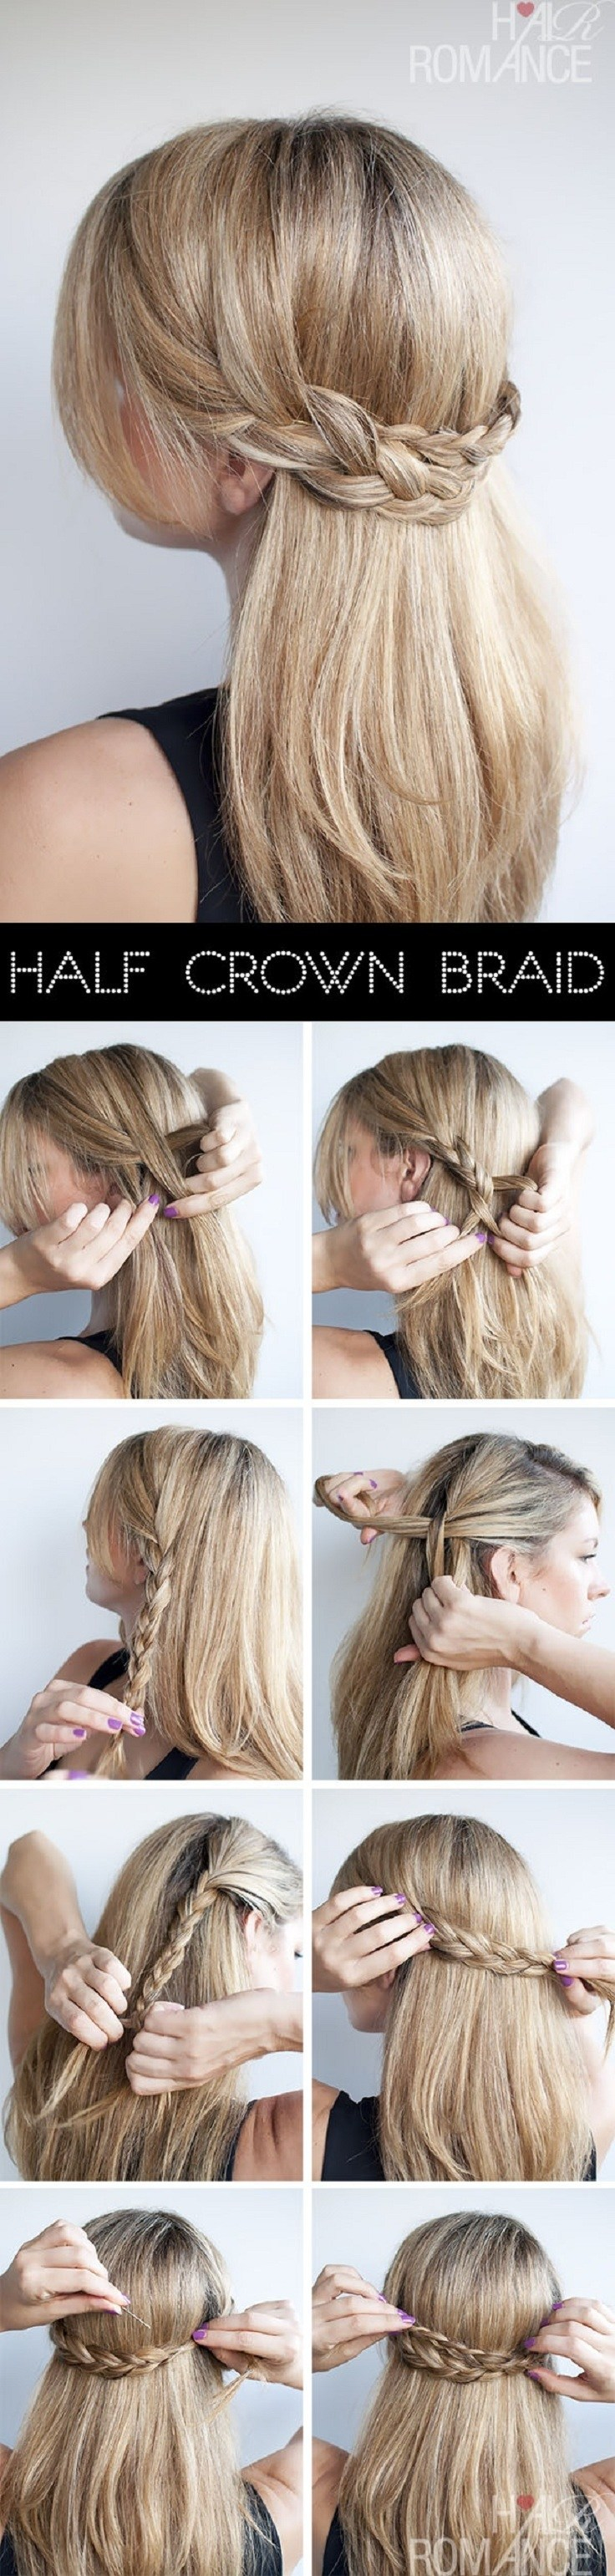 Tremendous Easy Hair Braids Step By Braids Hairstyle Inspiration Daily Dogsangcom